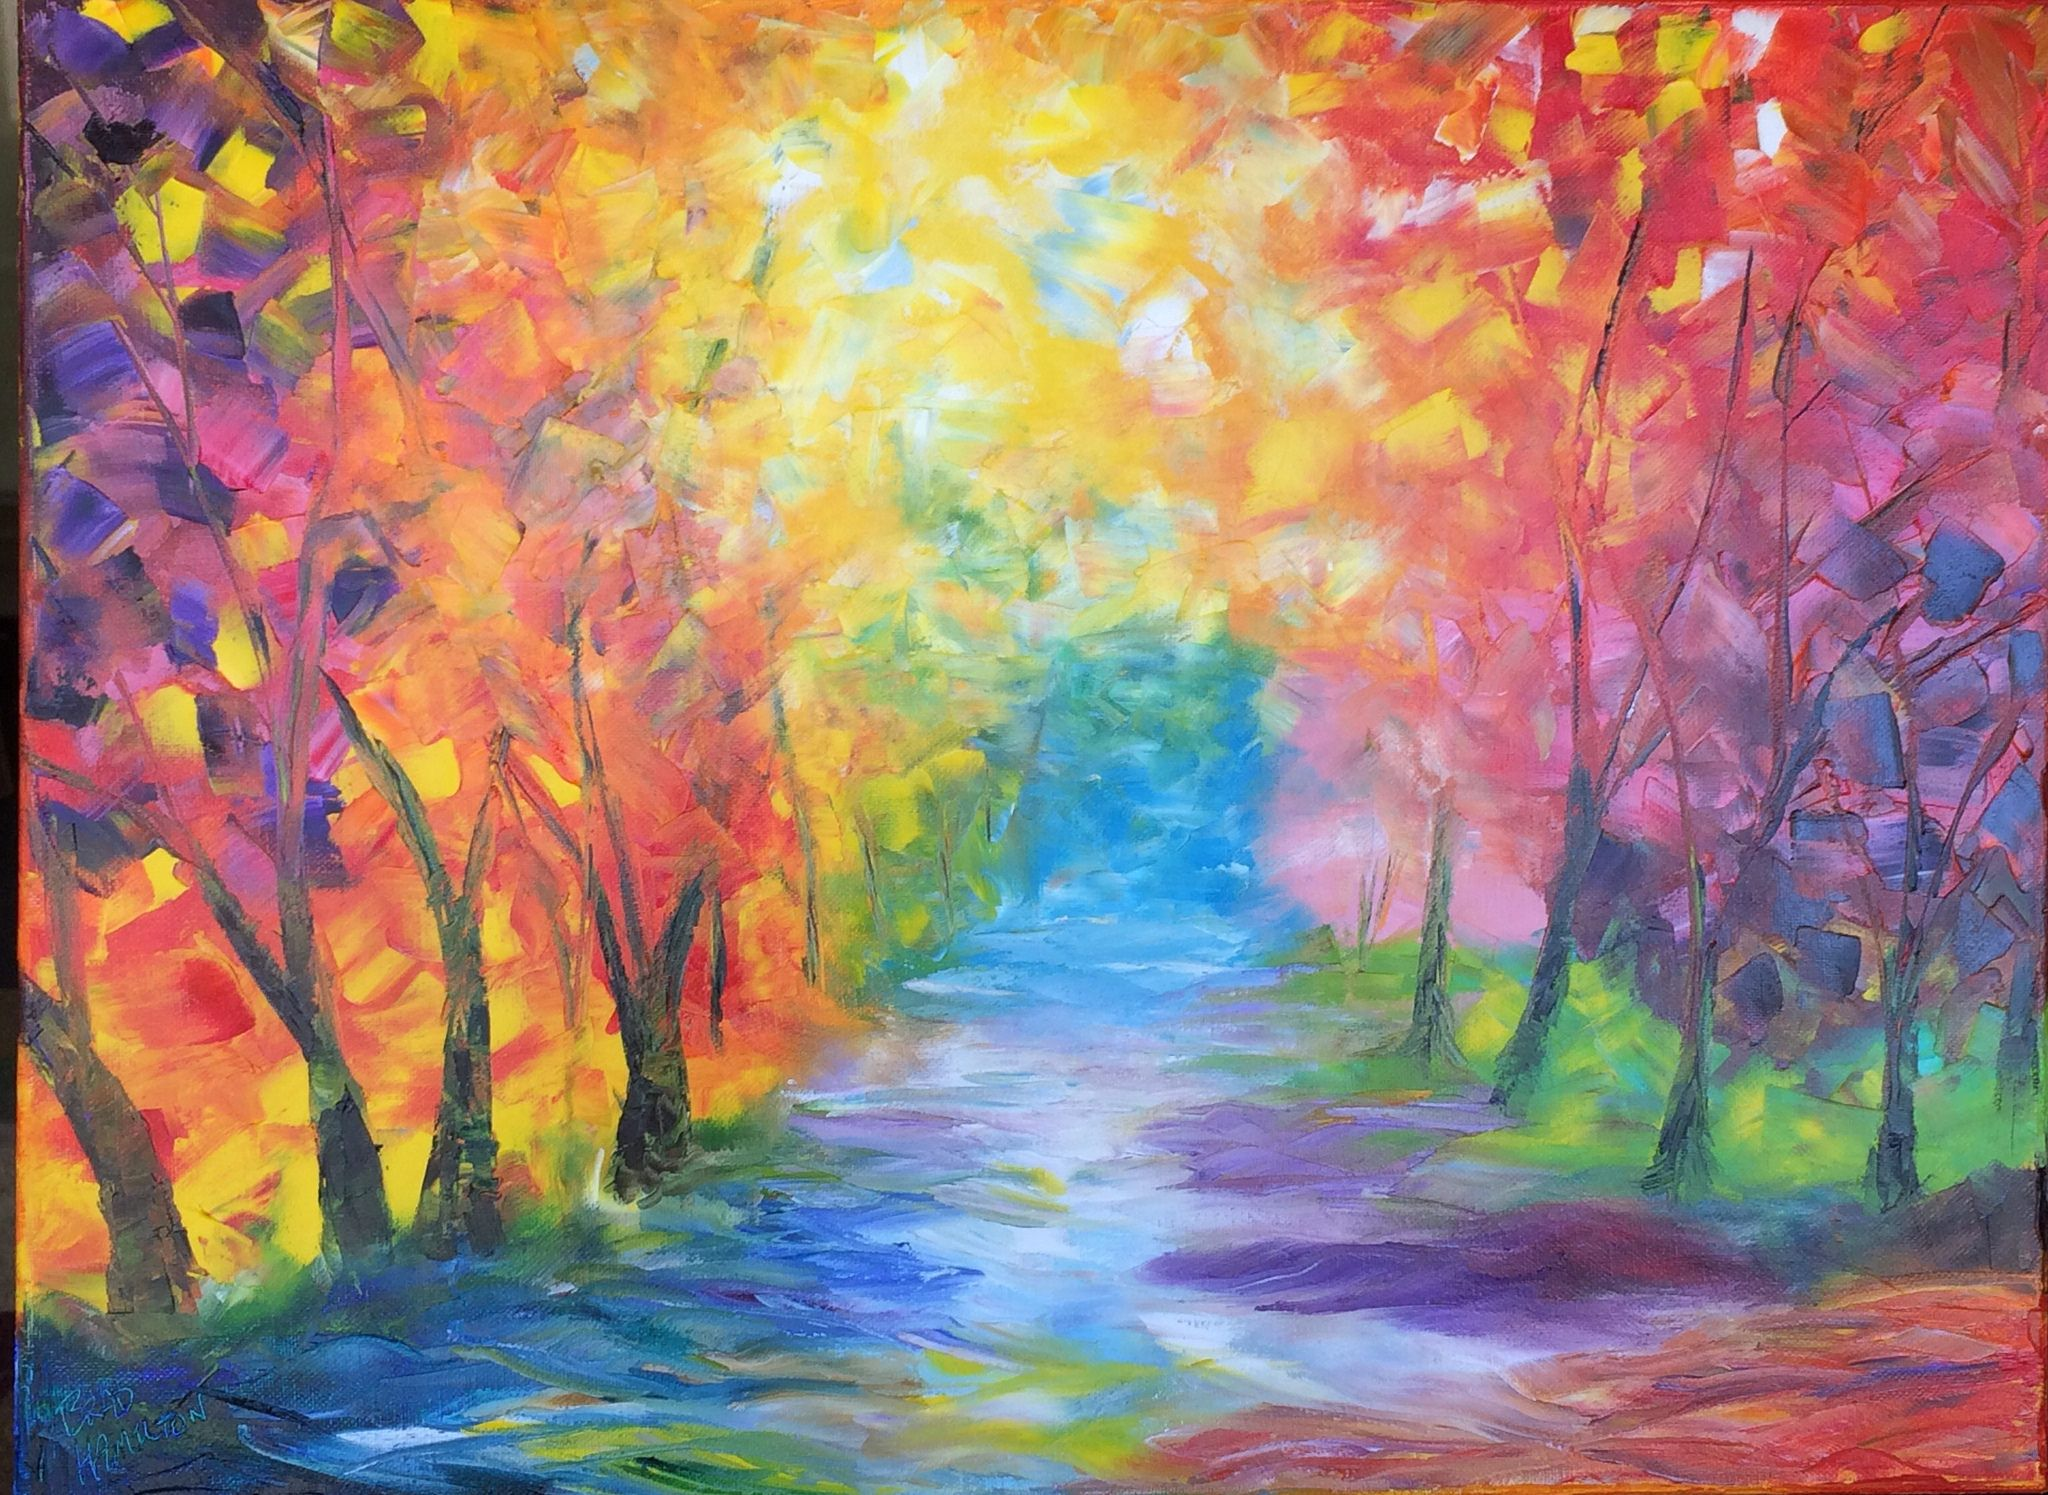 https://flic.kr/p/rHLqay | Fall colors | This is a 16x20 oil painting done by palette knife inspired by Leonid Afremov.